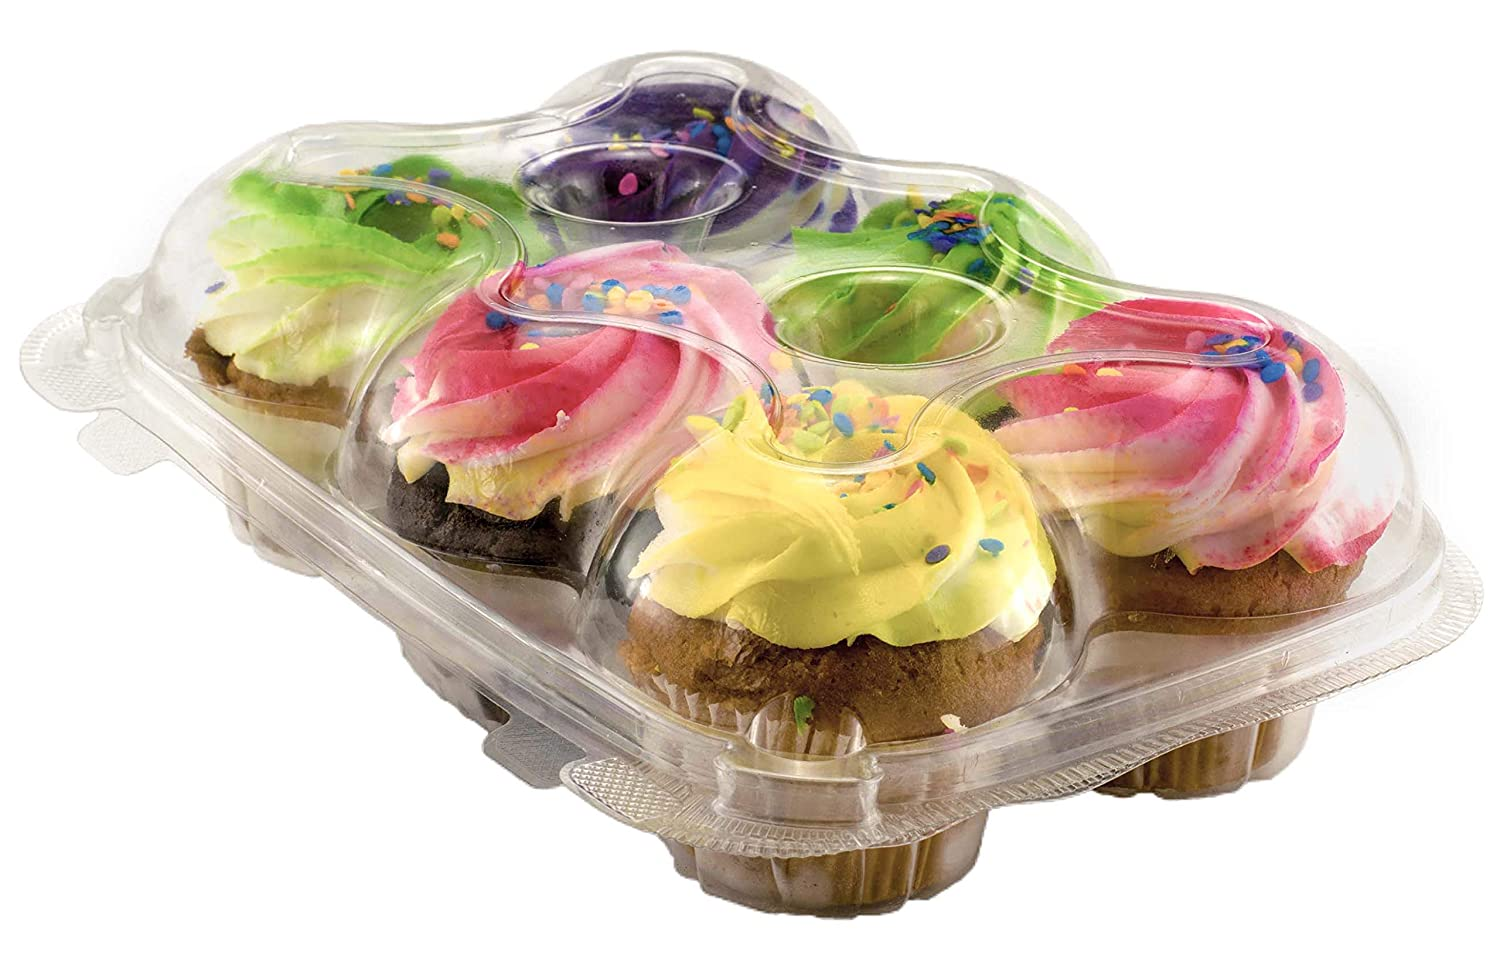 Amazon.com: Katgely Cupcake Boxes Cupcake Containers 6 Pack Cupcake ...